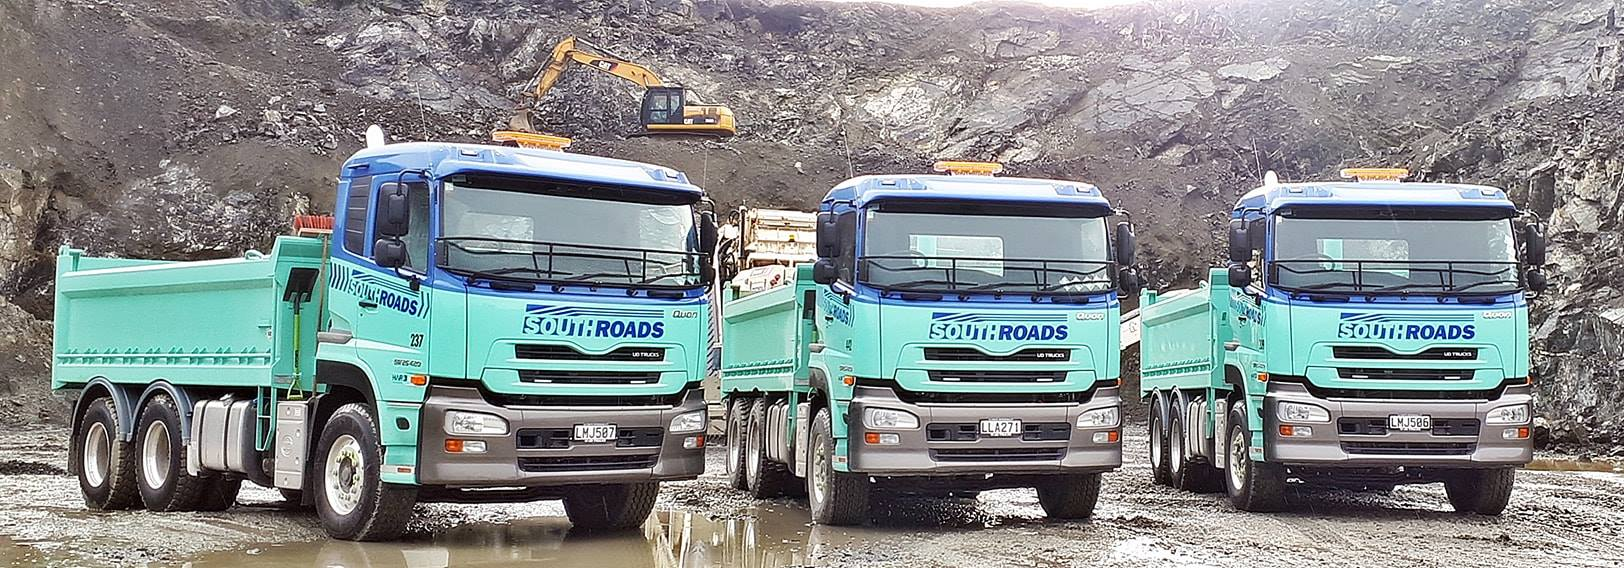 Nissan-UD-Trucks-Quon-GW26-420AS-models-in-NZ